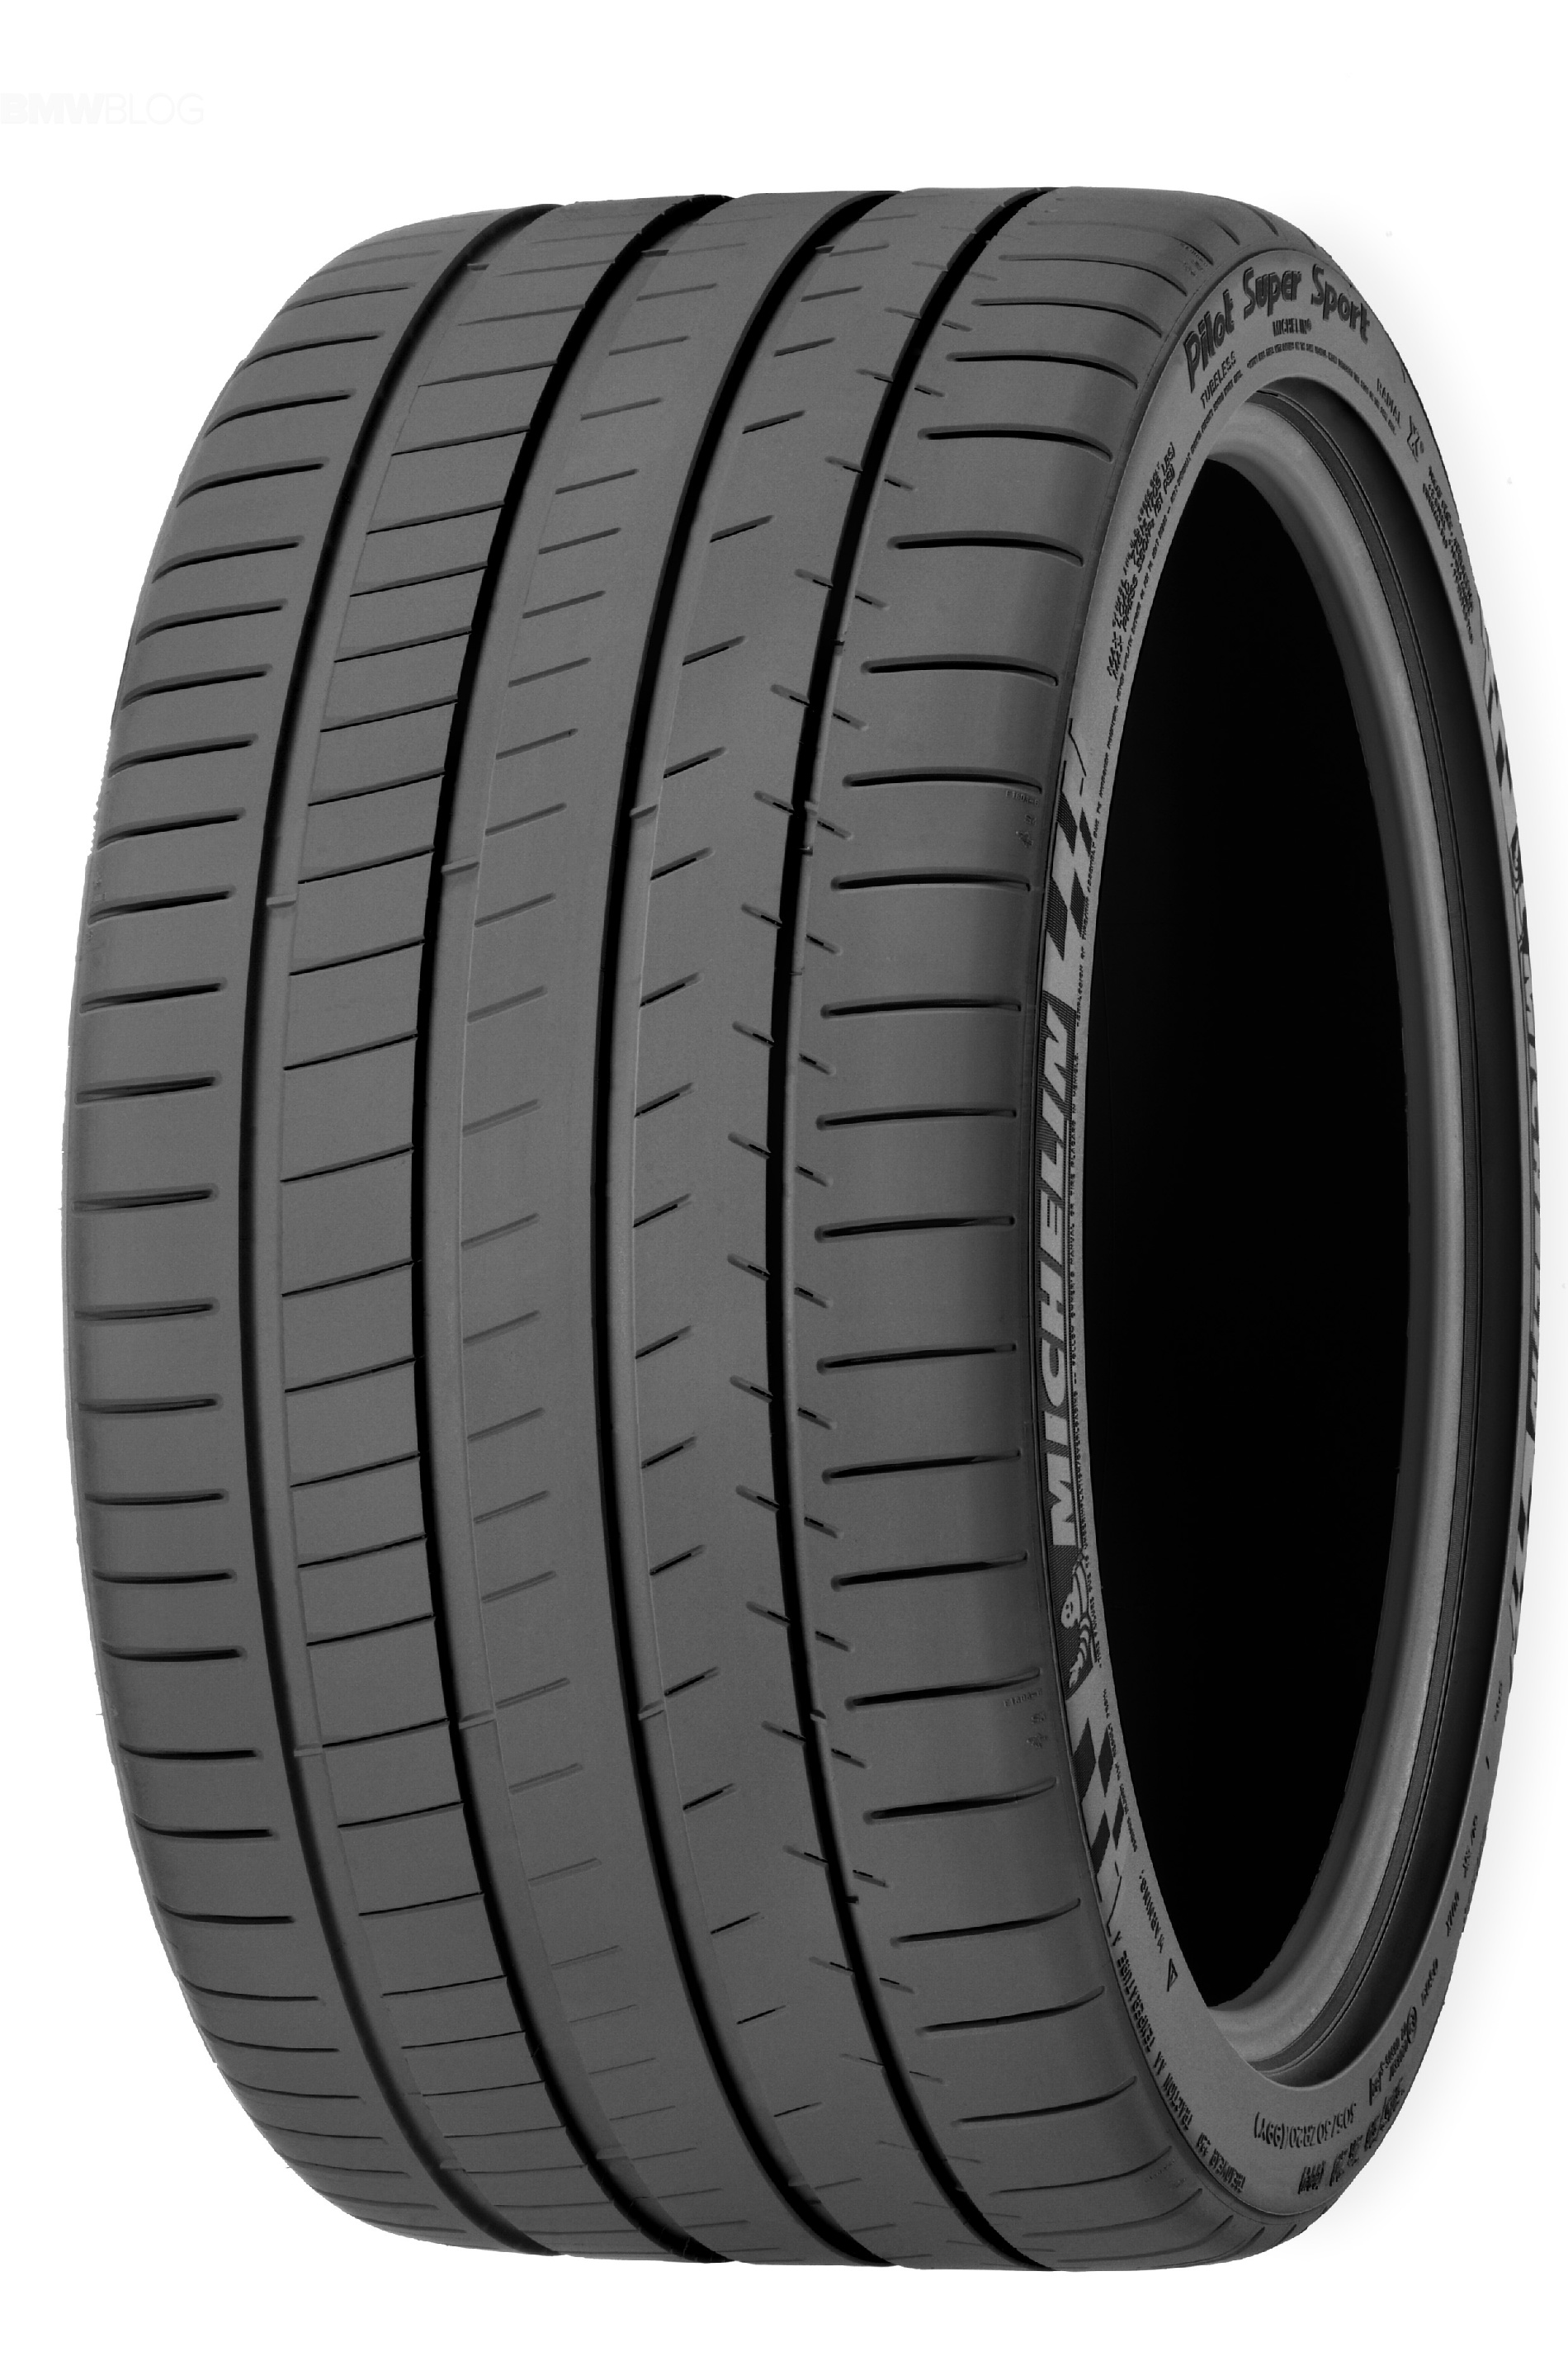 Летняя шина Michelin Pilot Super Sport 255/35 R20 97Y